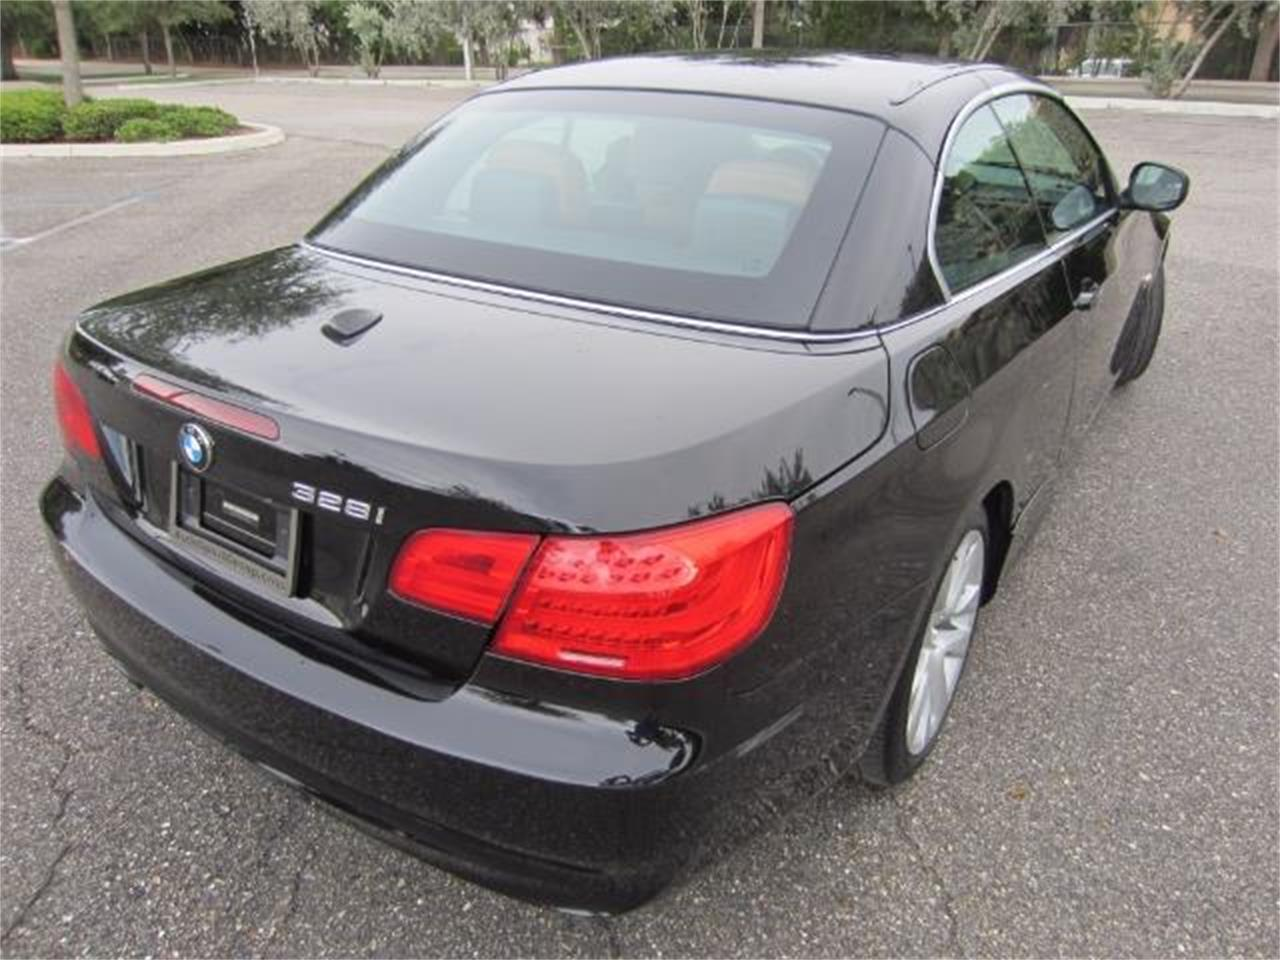 2011 BMW 328i for sale in Delray Beach, FL – photo 21